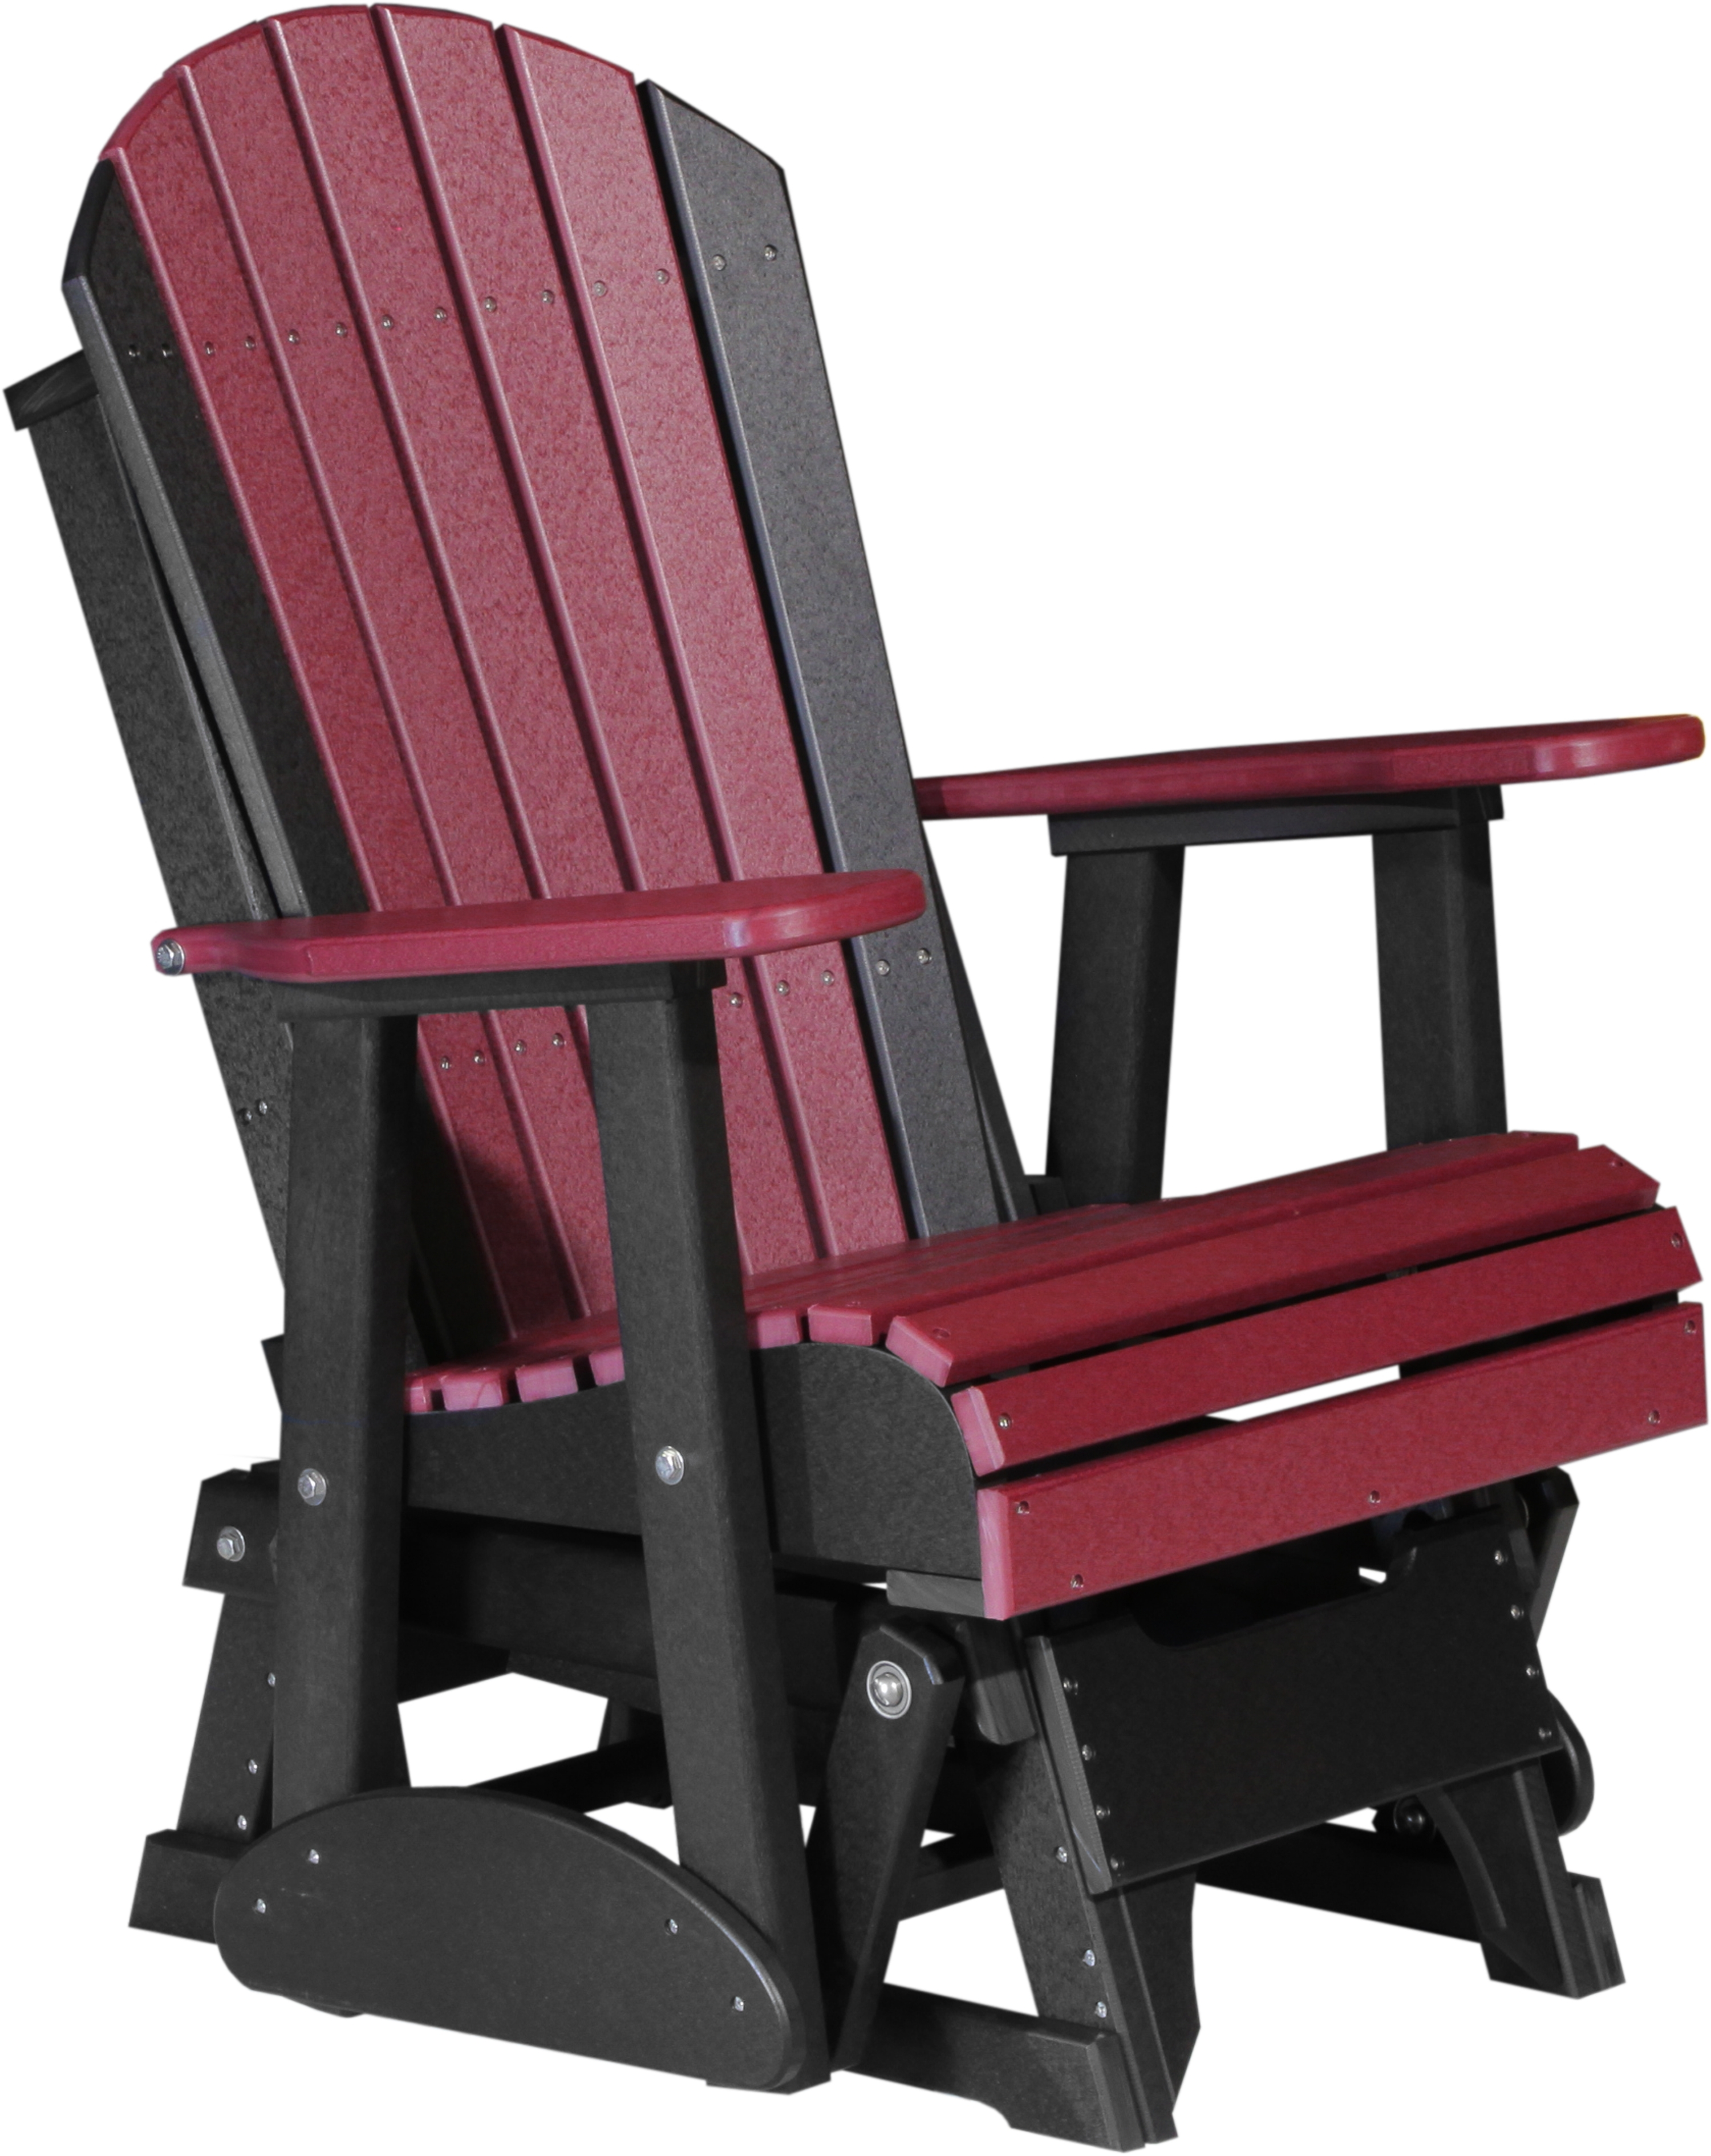 Most Popular Patio Rocking Chairs And Gliders Regarding Outdoor Furniture (View 7 of 15)